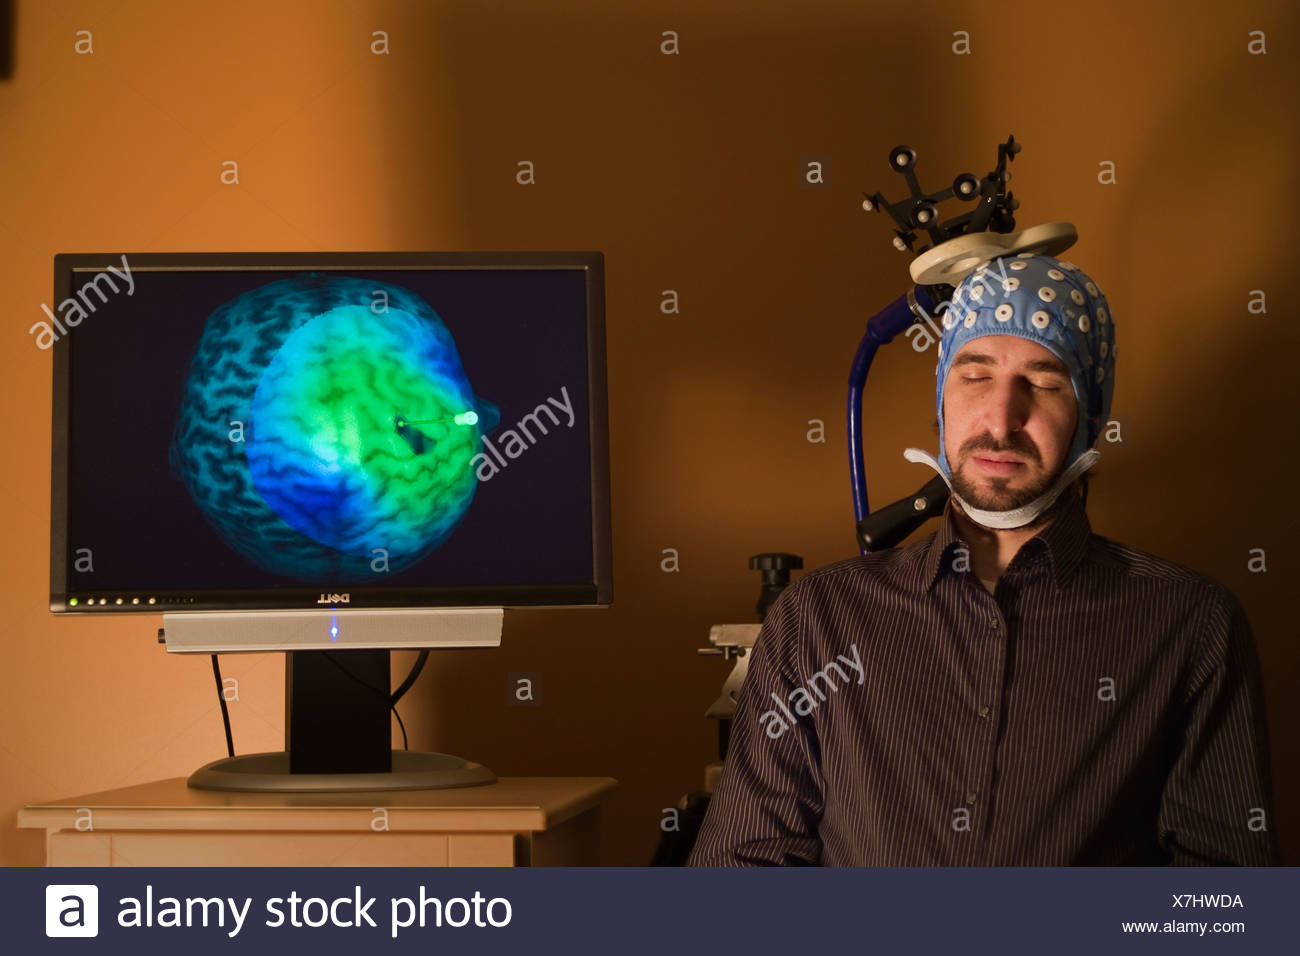 A device induces slow brain waves in sleeping patients. - Stock Image